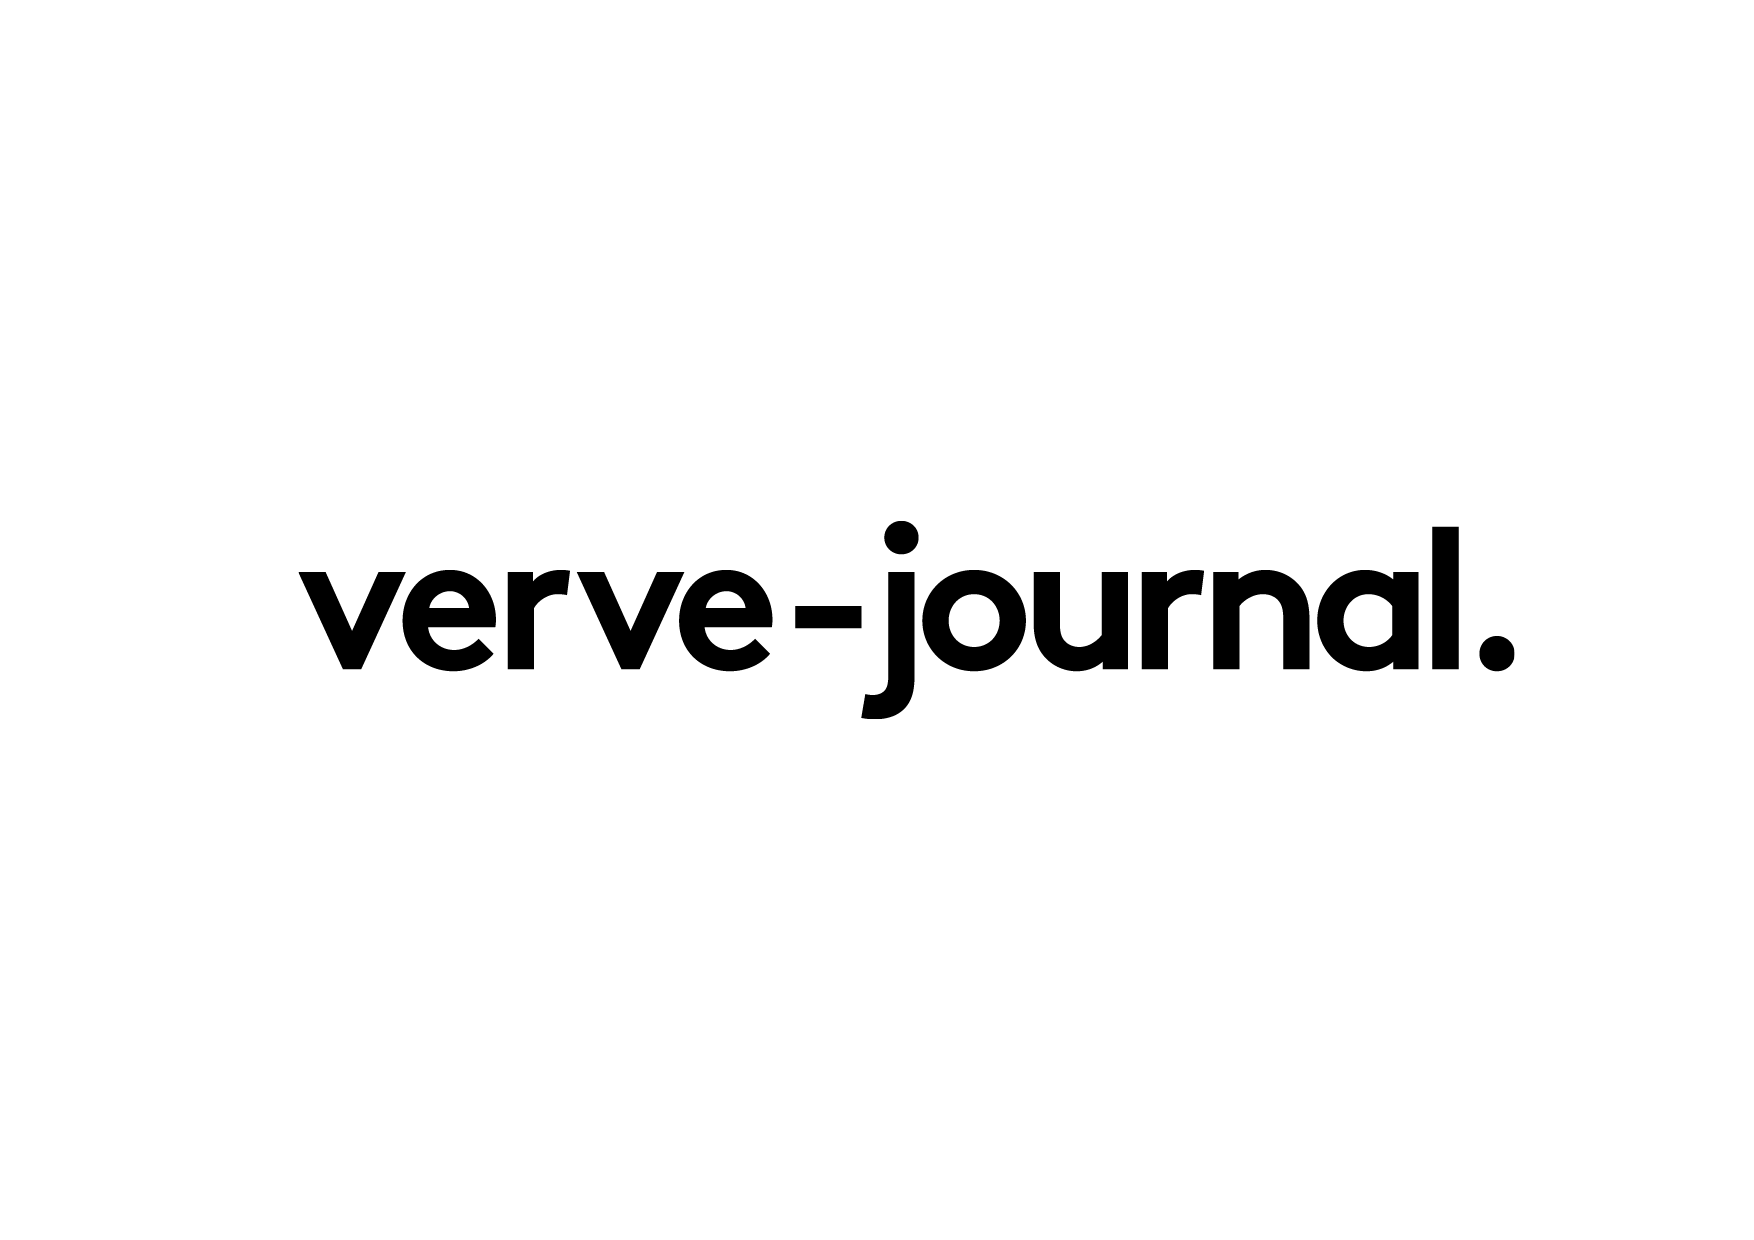 Verve-journal, logotype   2016   Verve-journal is an online magazine specialized in art, music and design. The journal is aiming to appeal a young audience seeking for a simple and friendly approach to cultural discoveries.